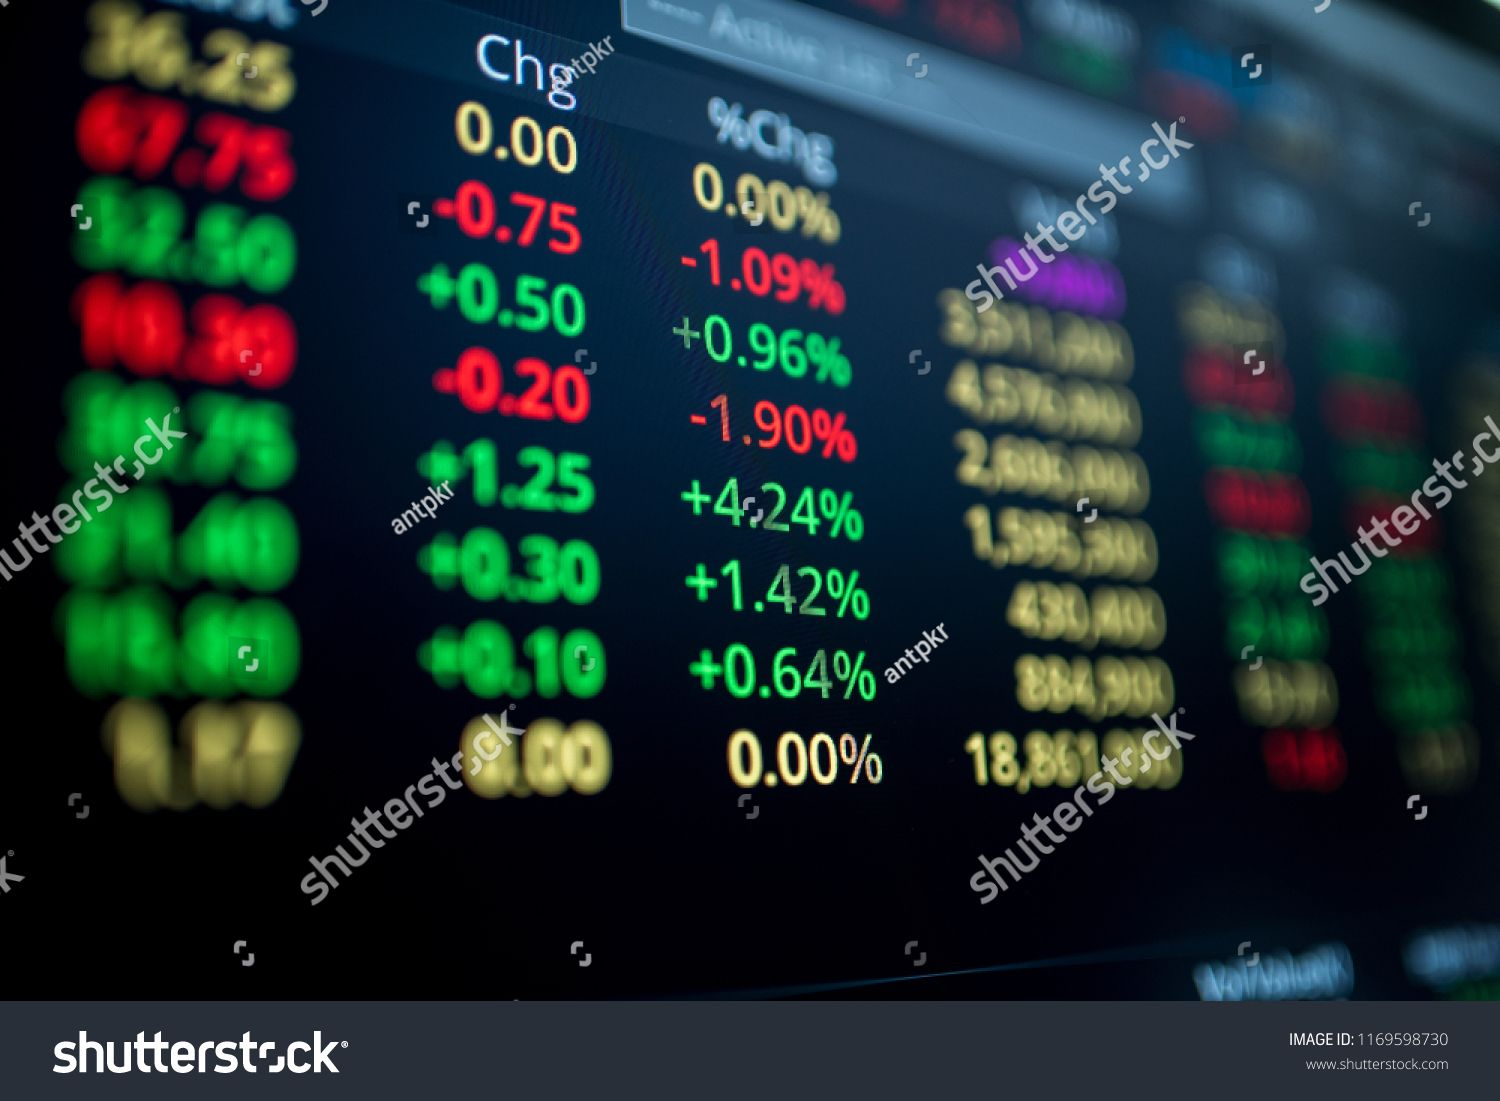 Display Of Stock Market Exchange Board Stock Display Market Board App Design Inspiration Stock Market App Design